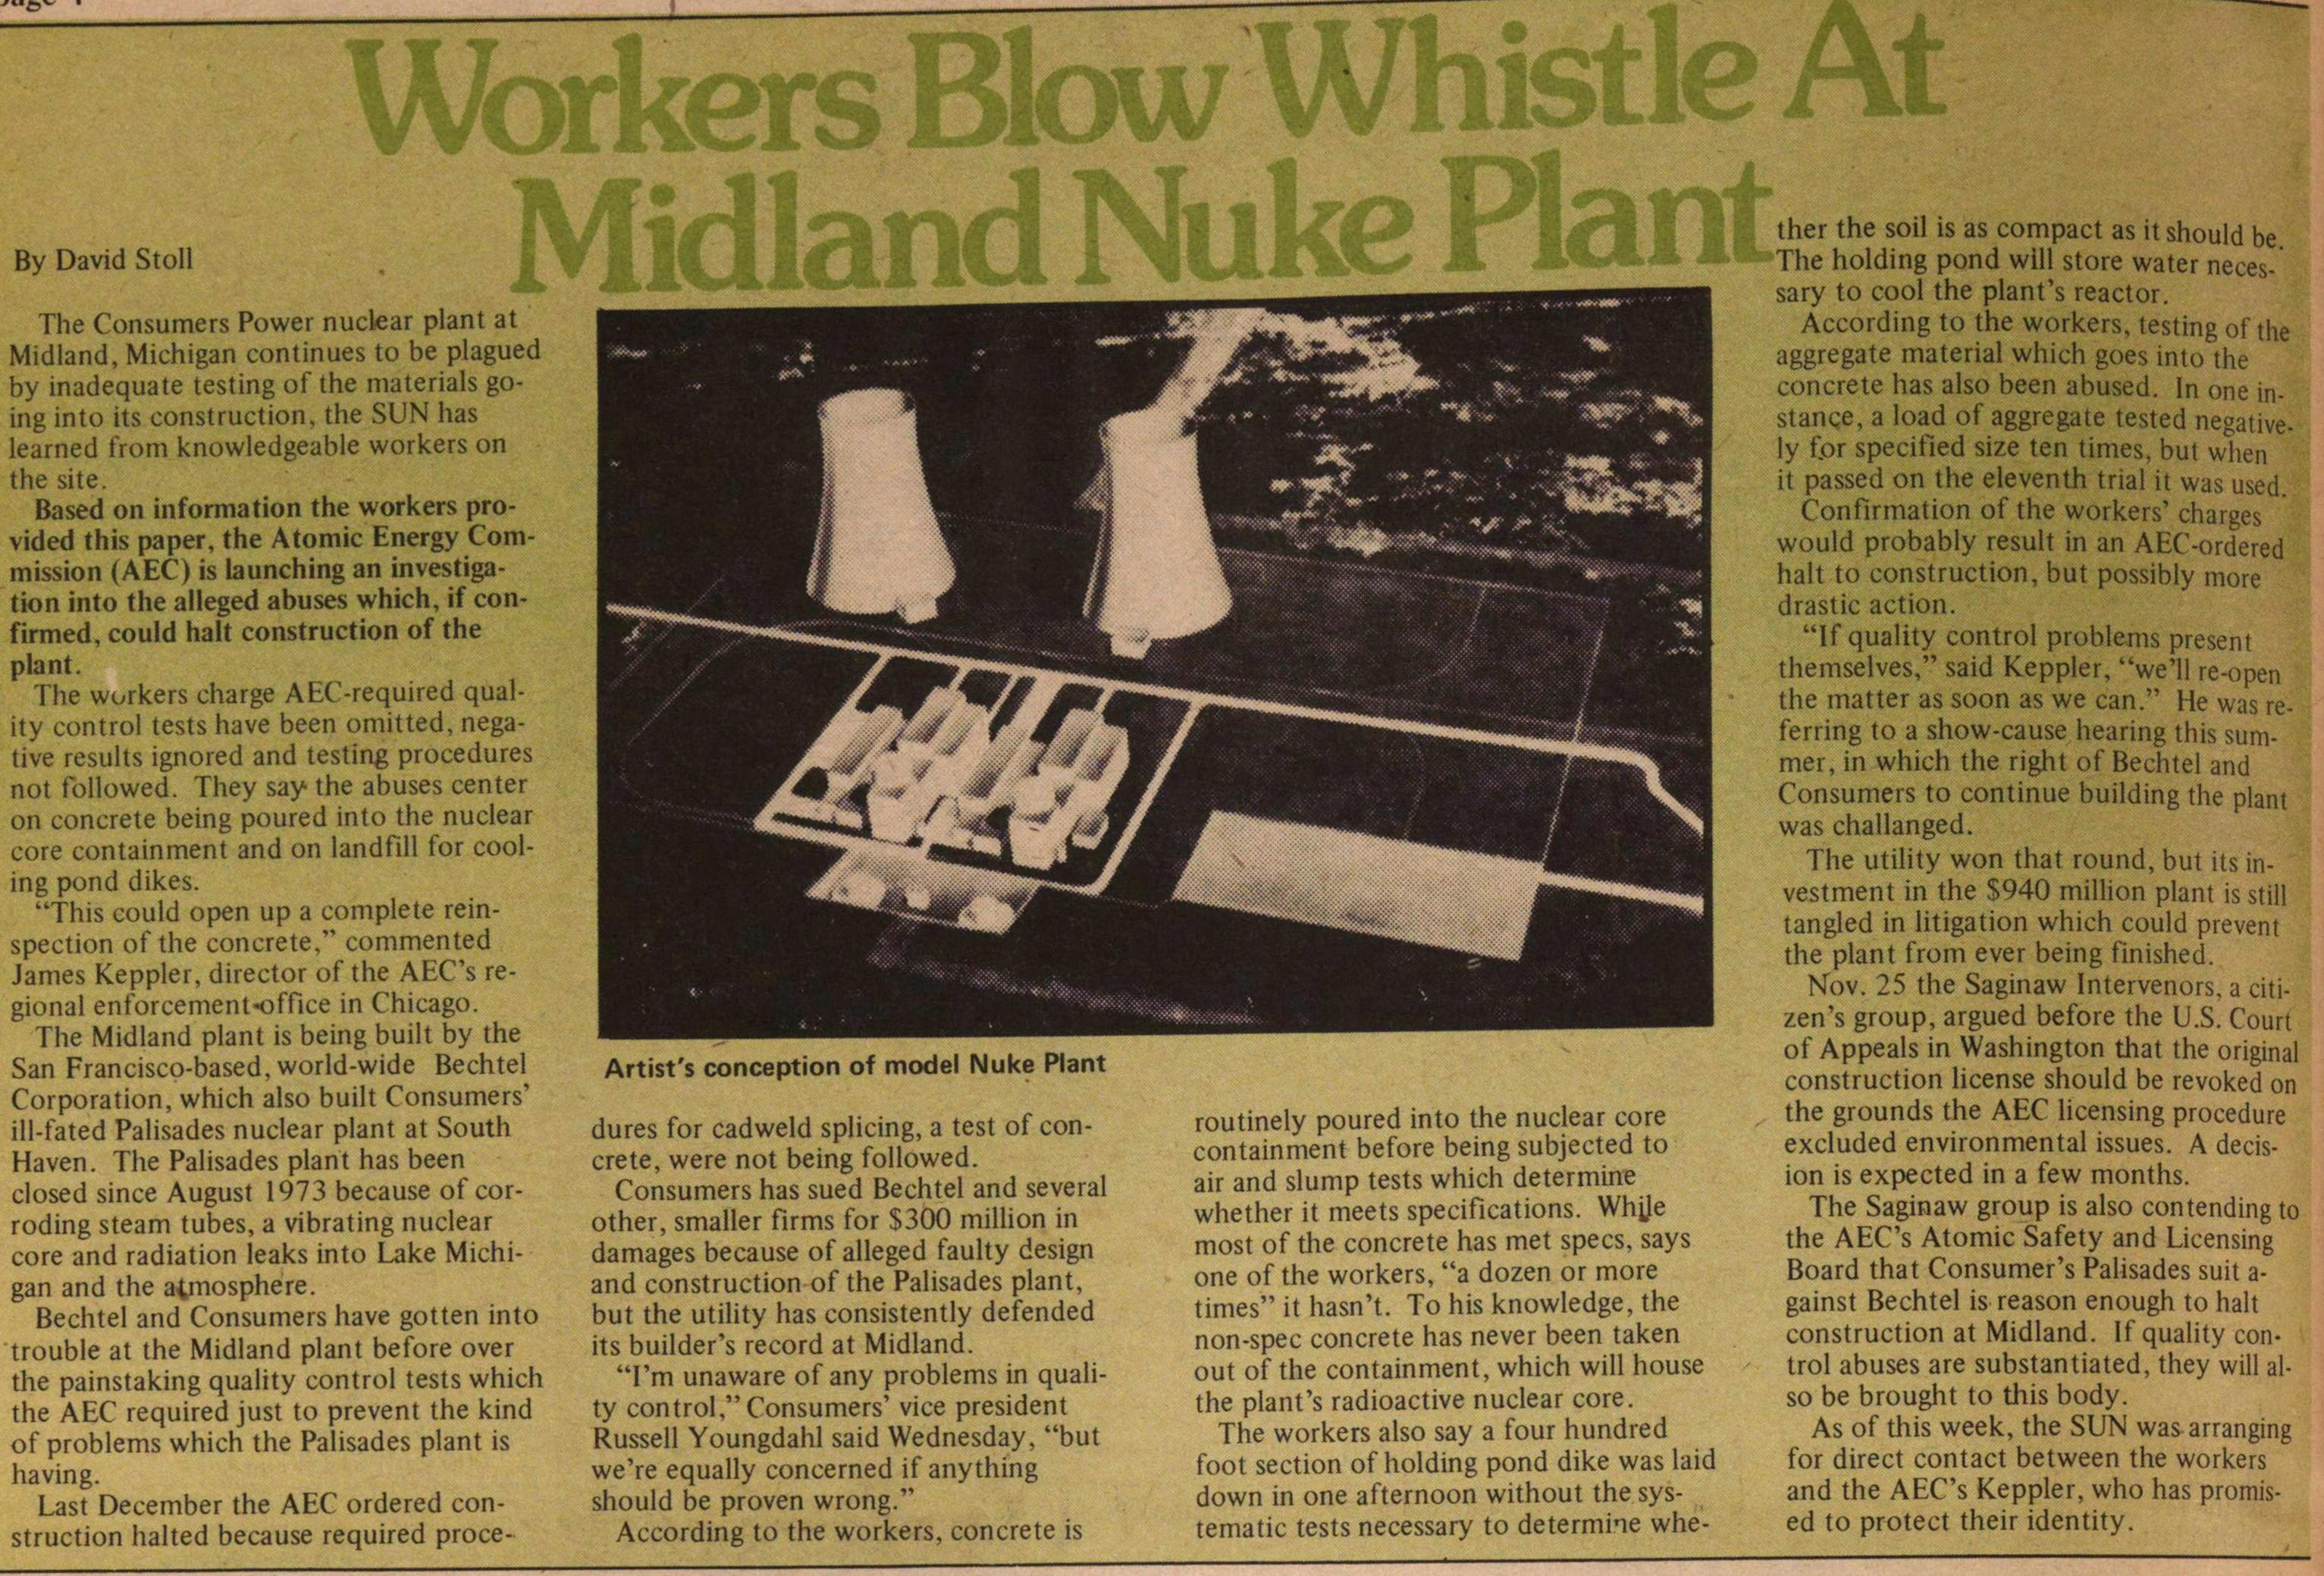 Workers Blow Whistle At Midland Nuke Plant image